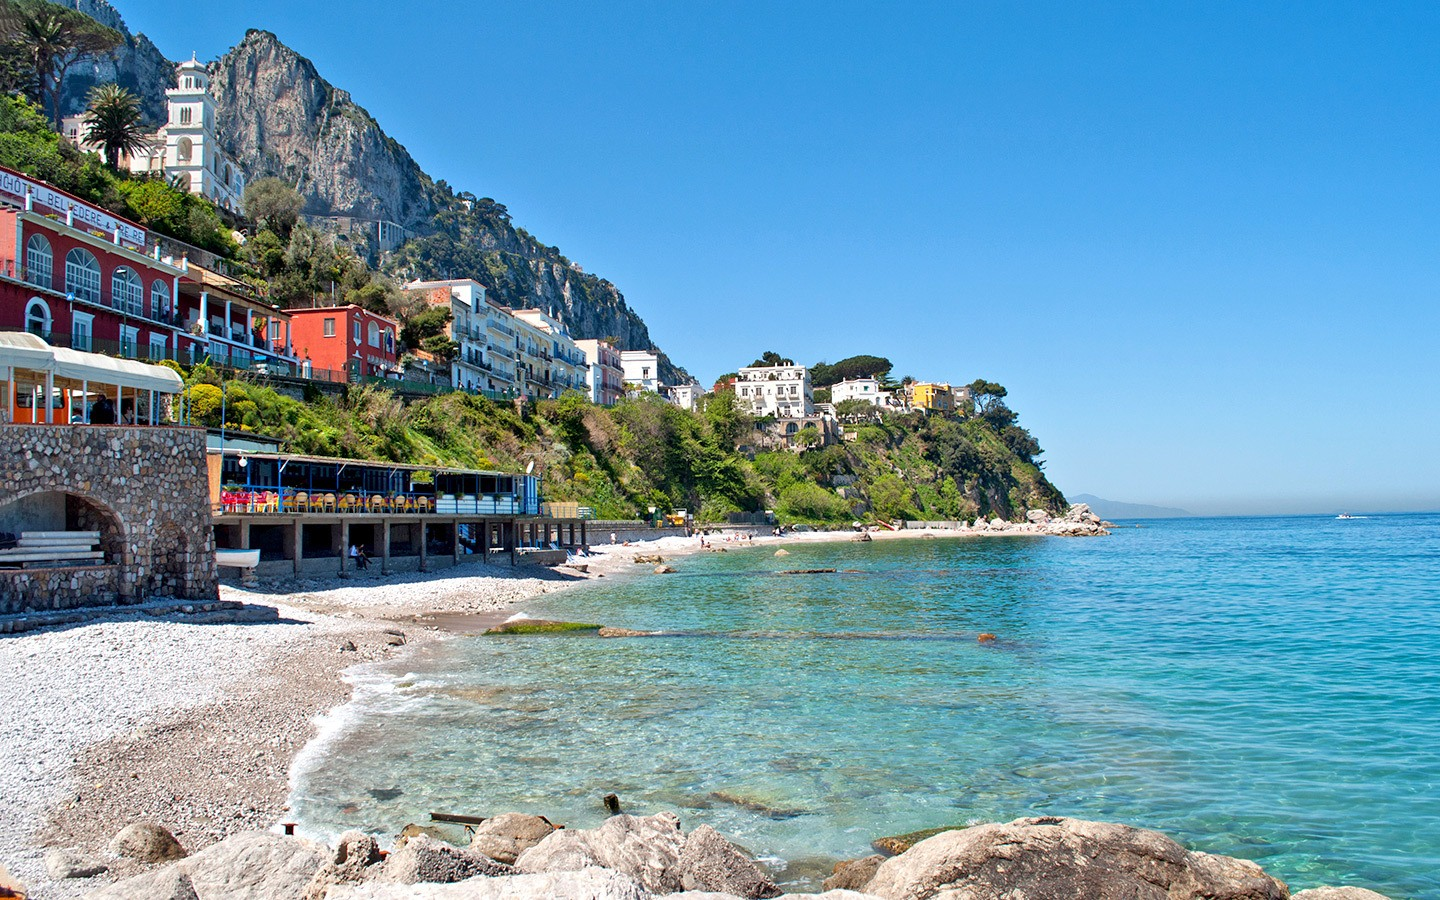 Beaches on the island of Capri, Italy